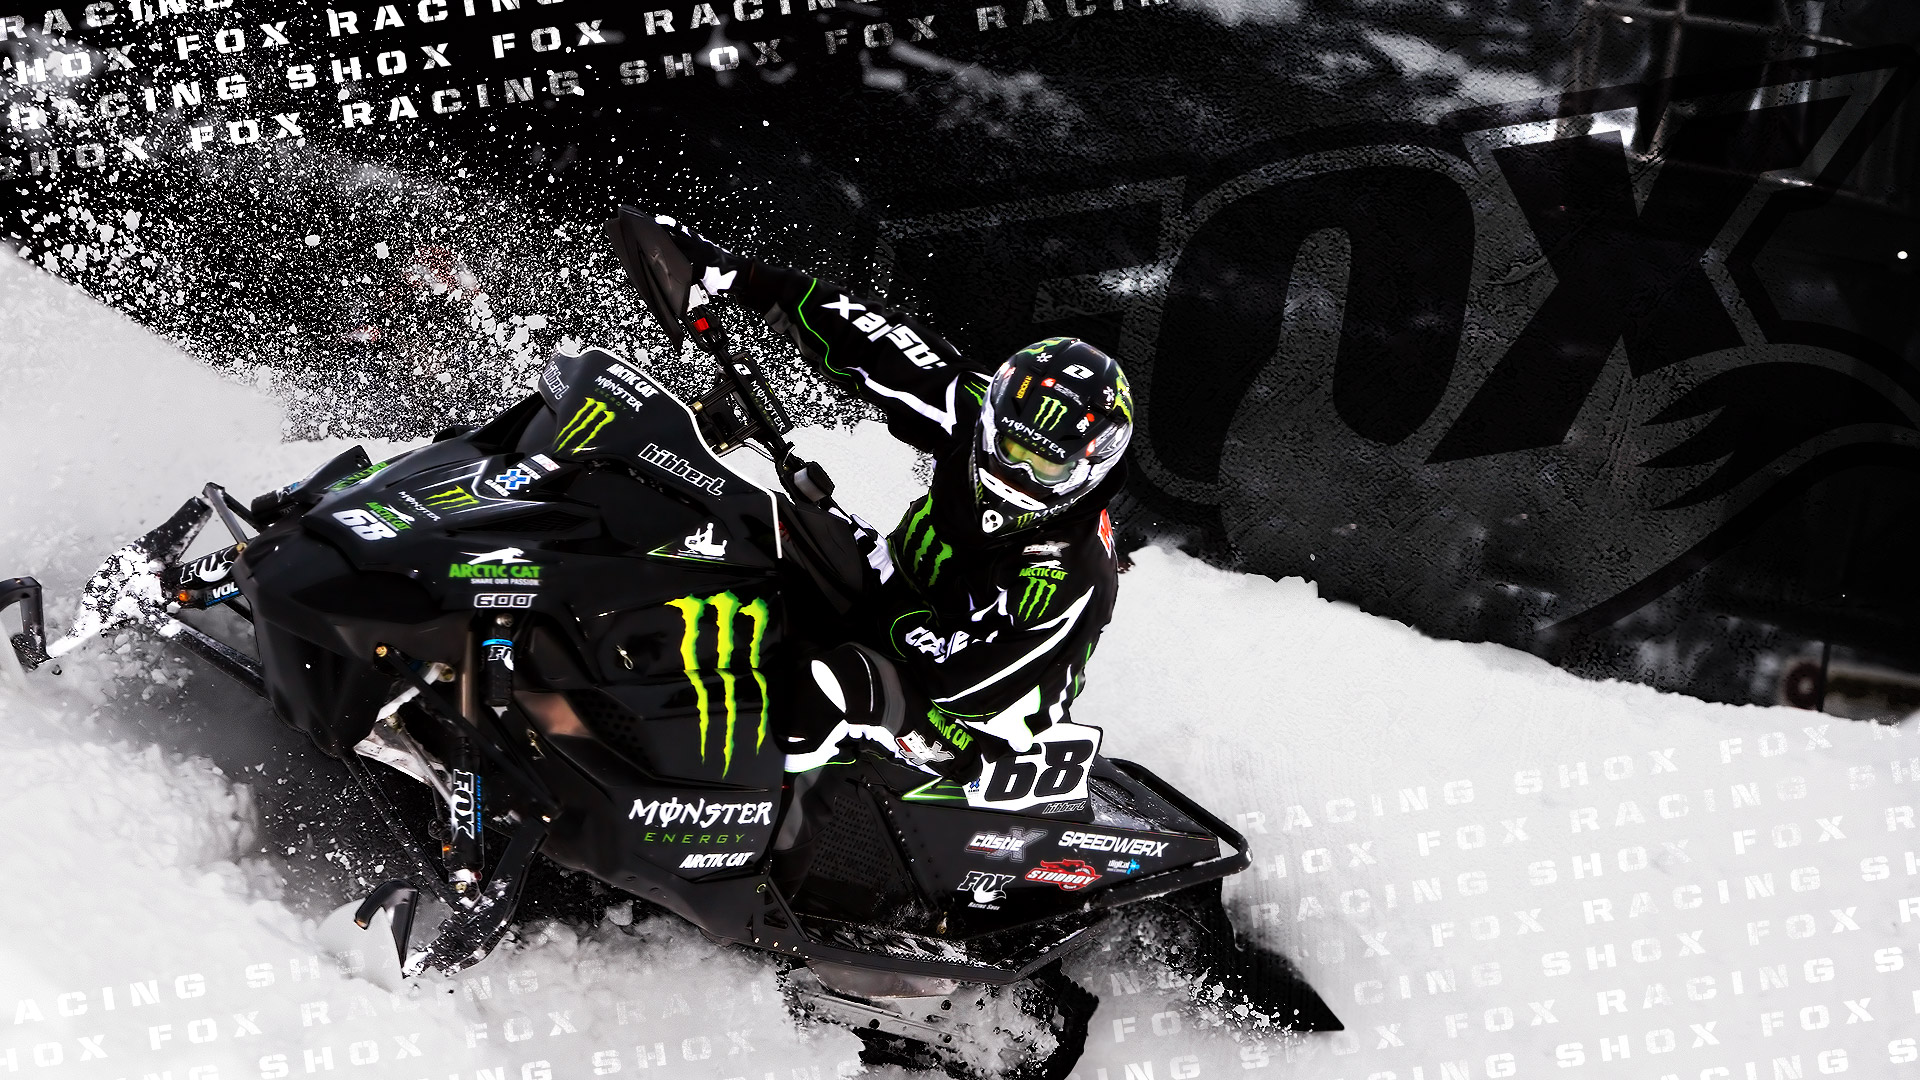 Image: http://www.desktopwallpaperhd.net/wallpapers/5/3/winter-xgames-snowwallpaper-wallpaper-fox-images-games-fourteen-59315.jpg